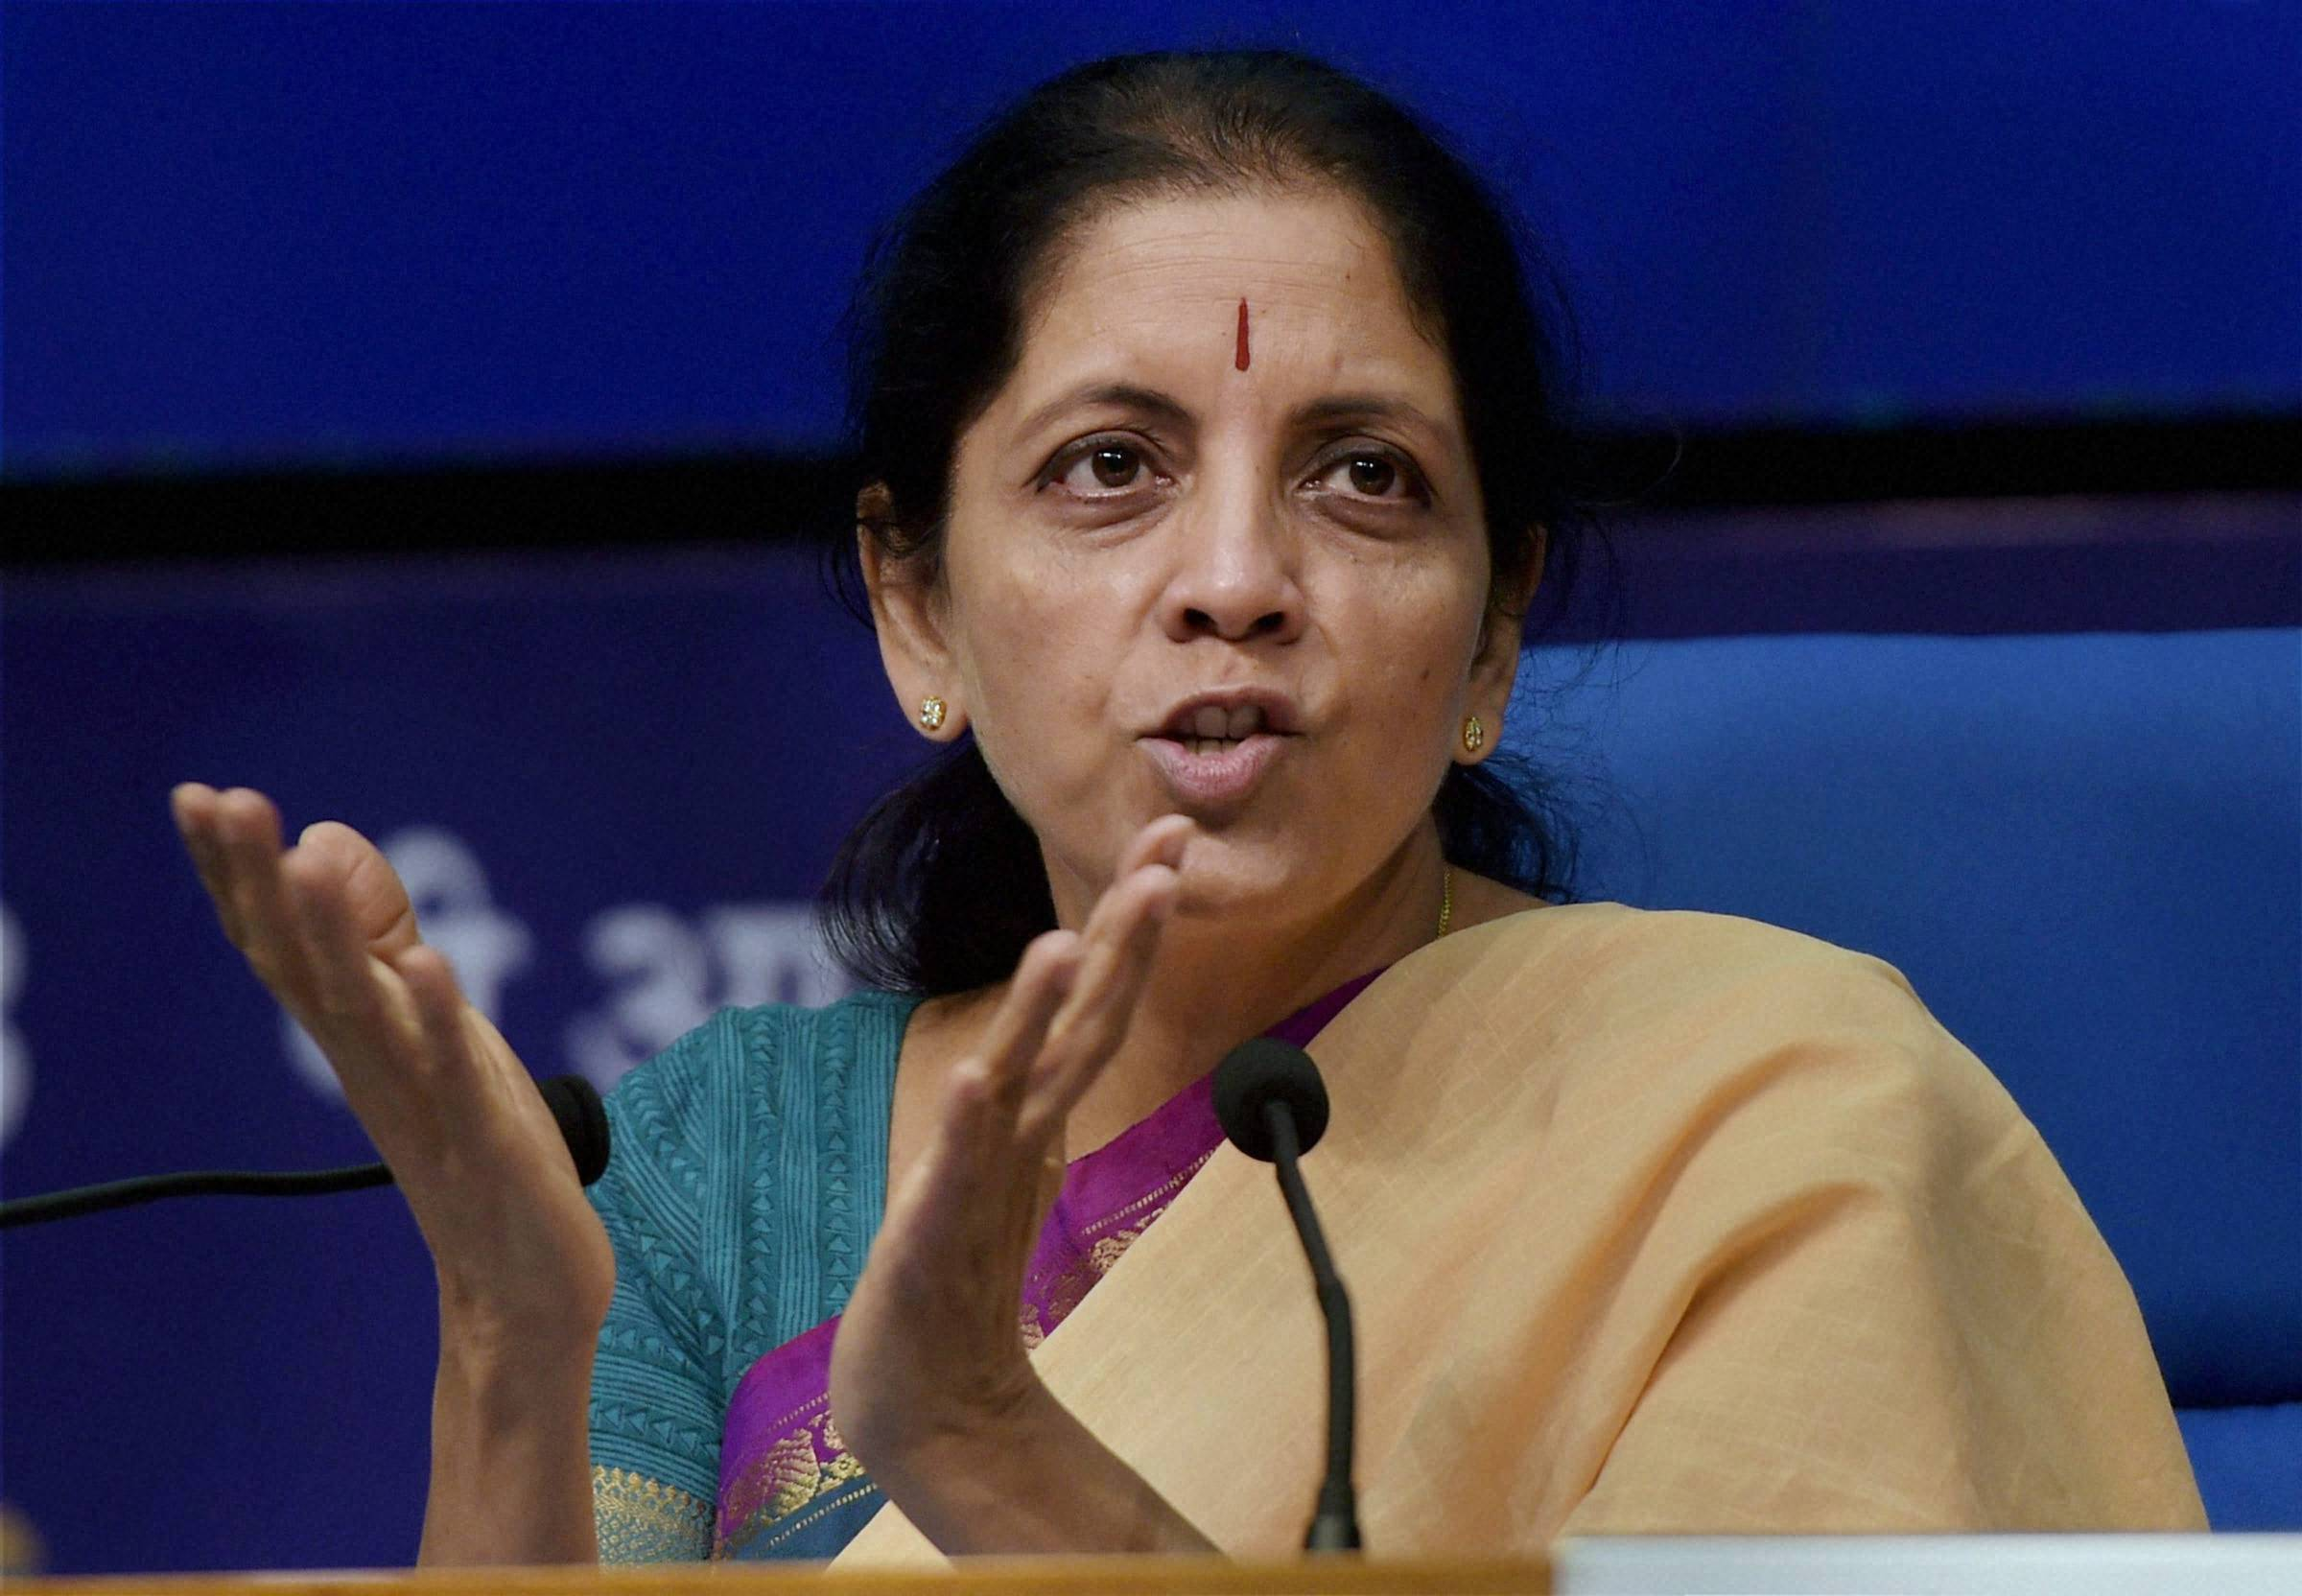 Nirmala Sitharaman 'Not Concerned' With China's Opinion on Her Arunachal Pradesh Visit